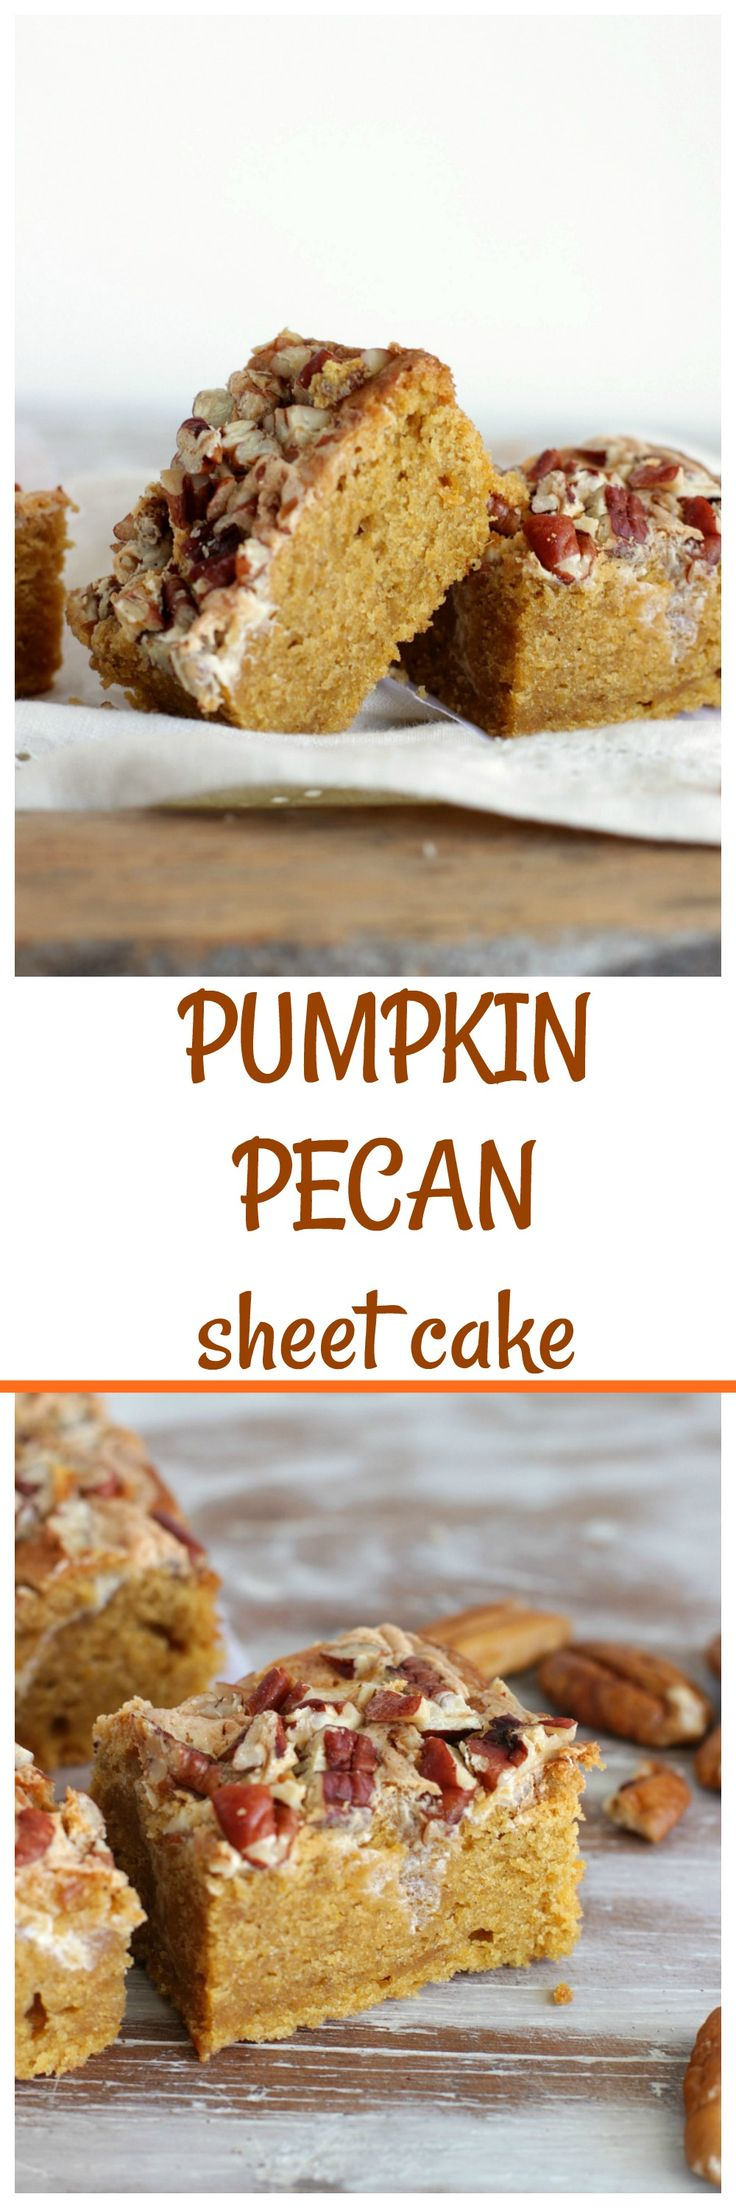 PUMPKIN PECAN SHEET CAKE, moist, sweet, easy to make and with that unmistakable spicy pumpkin flavor. A favorite around here.